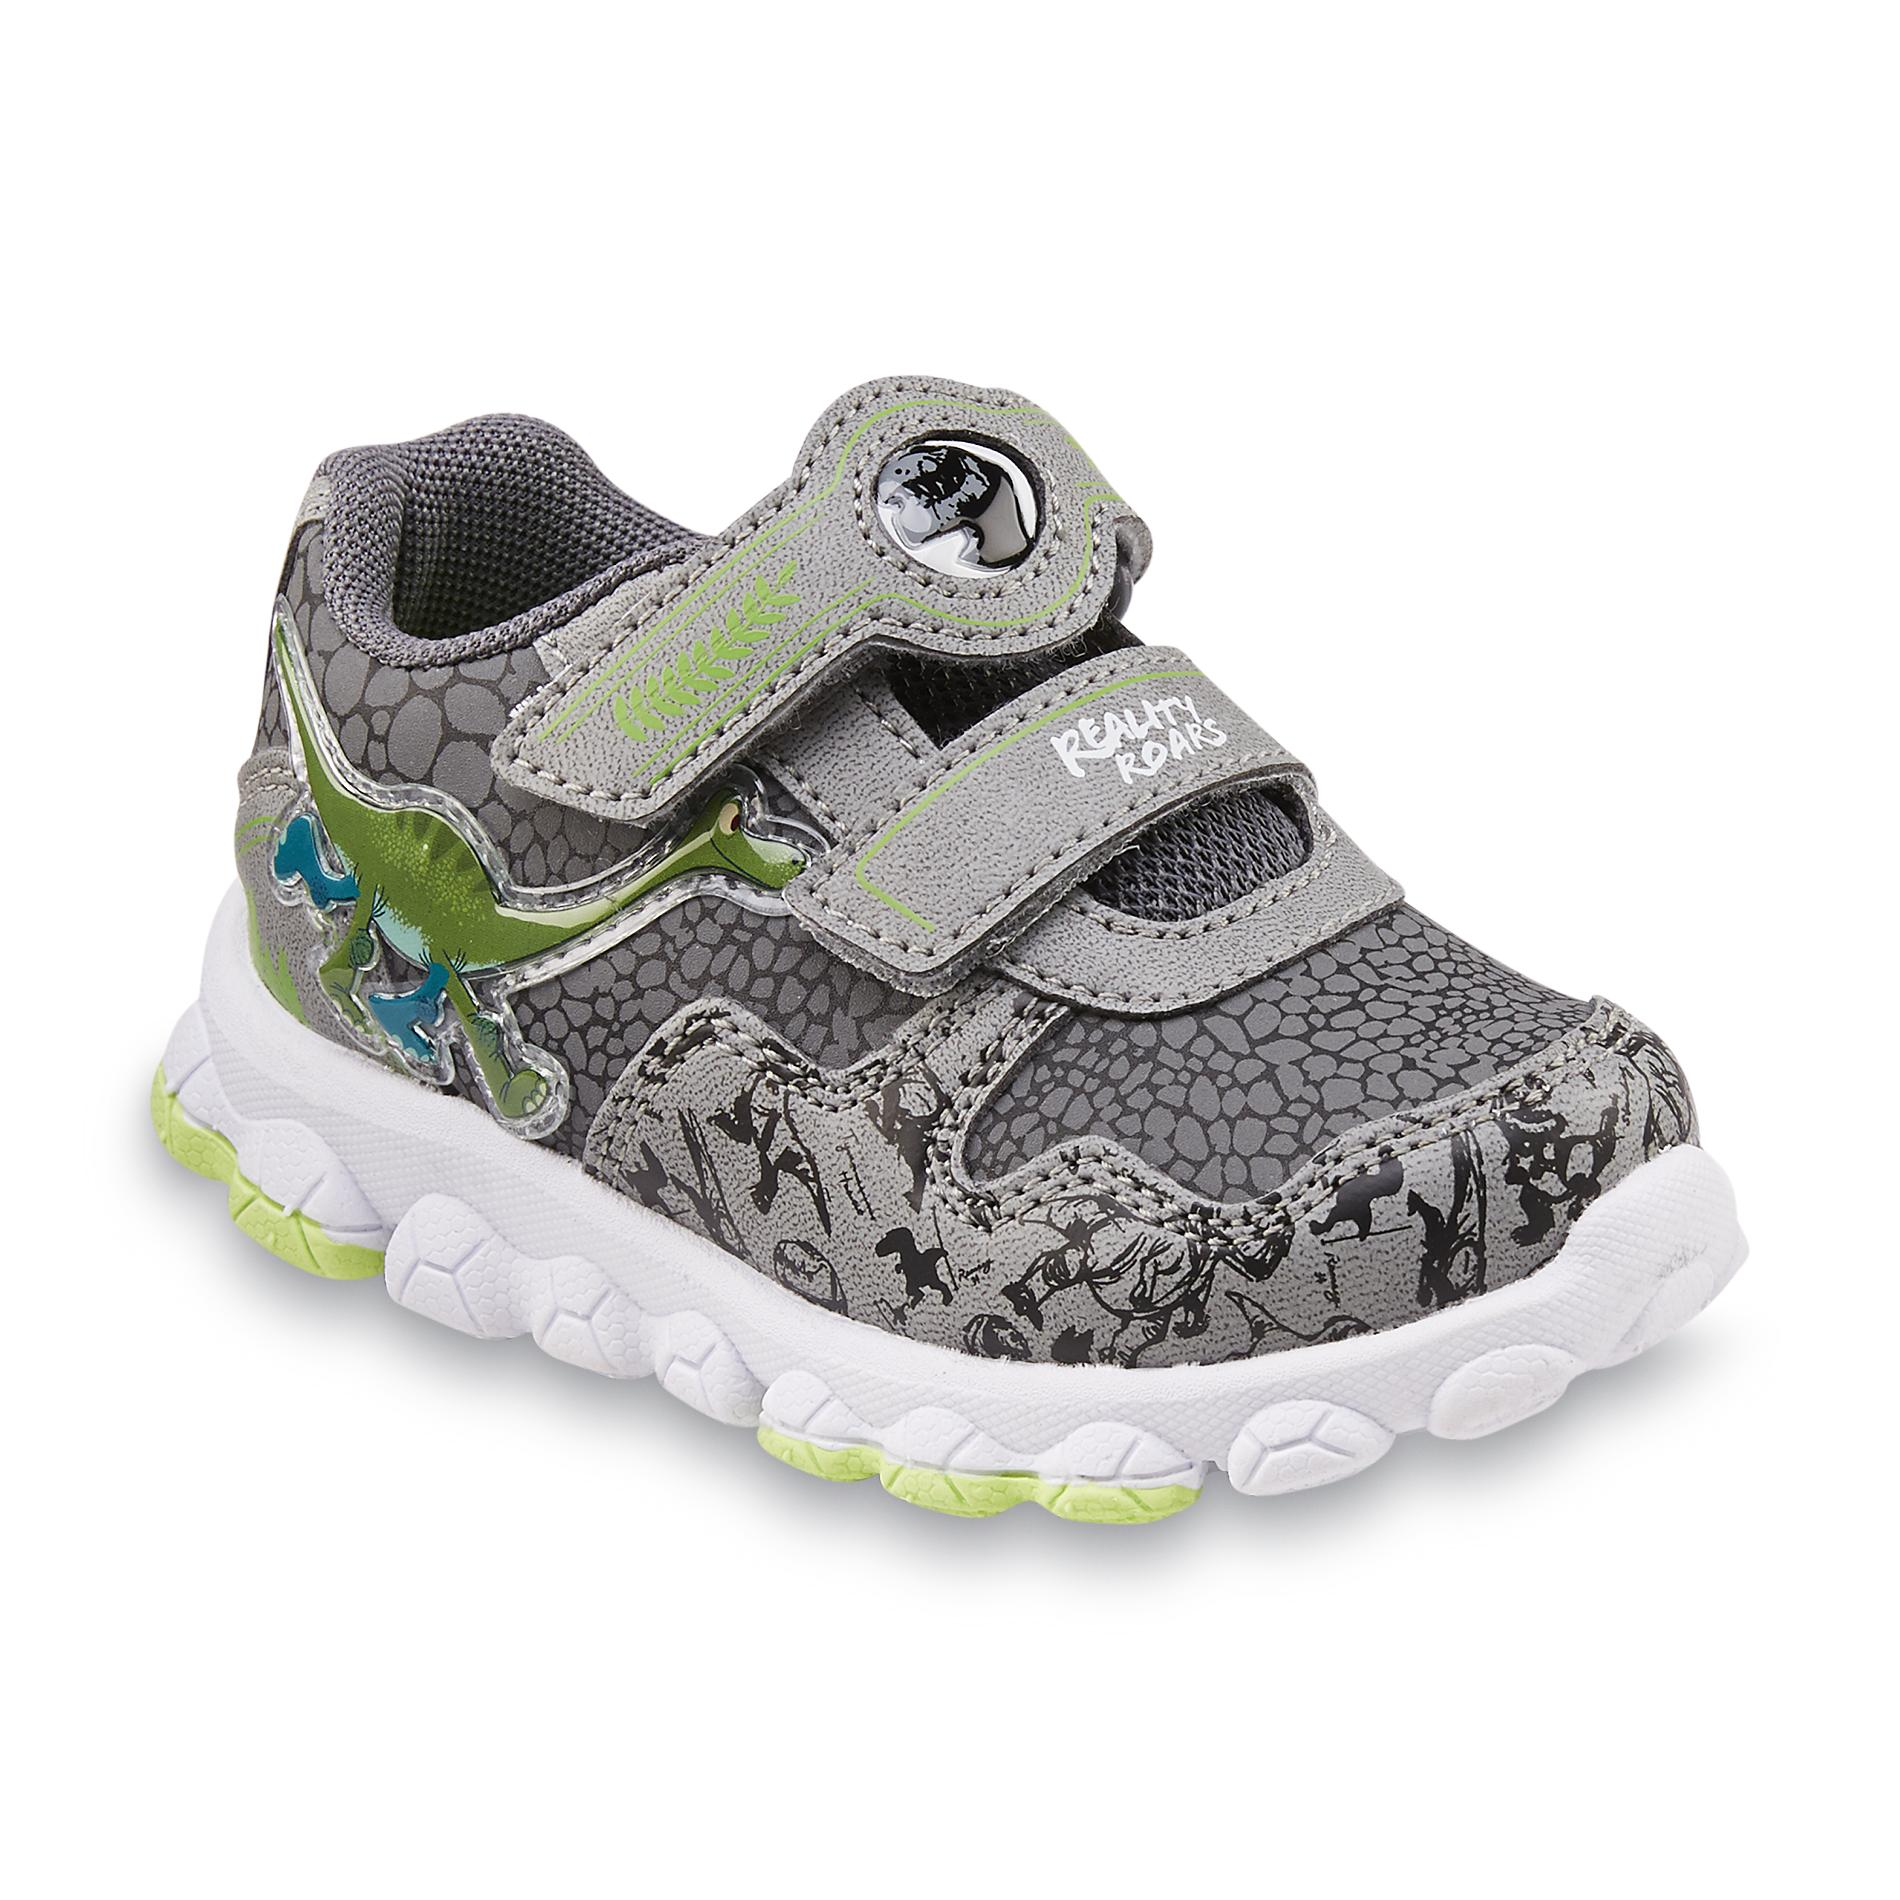 Toddler Light Shoes Boys